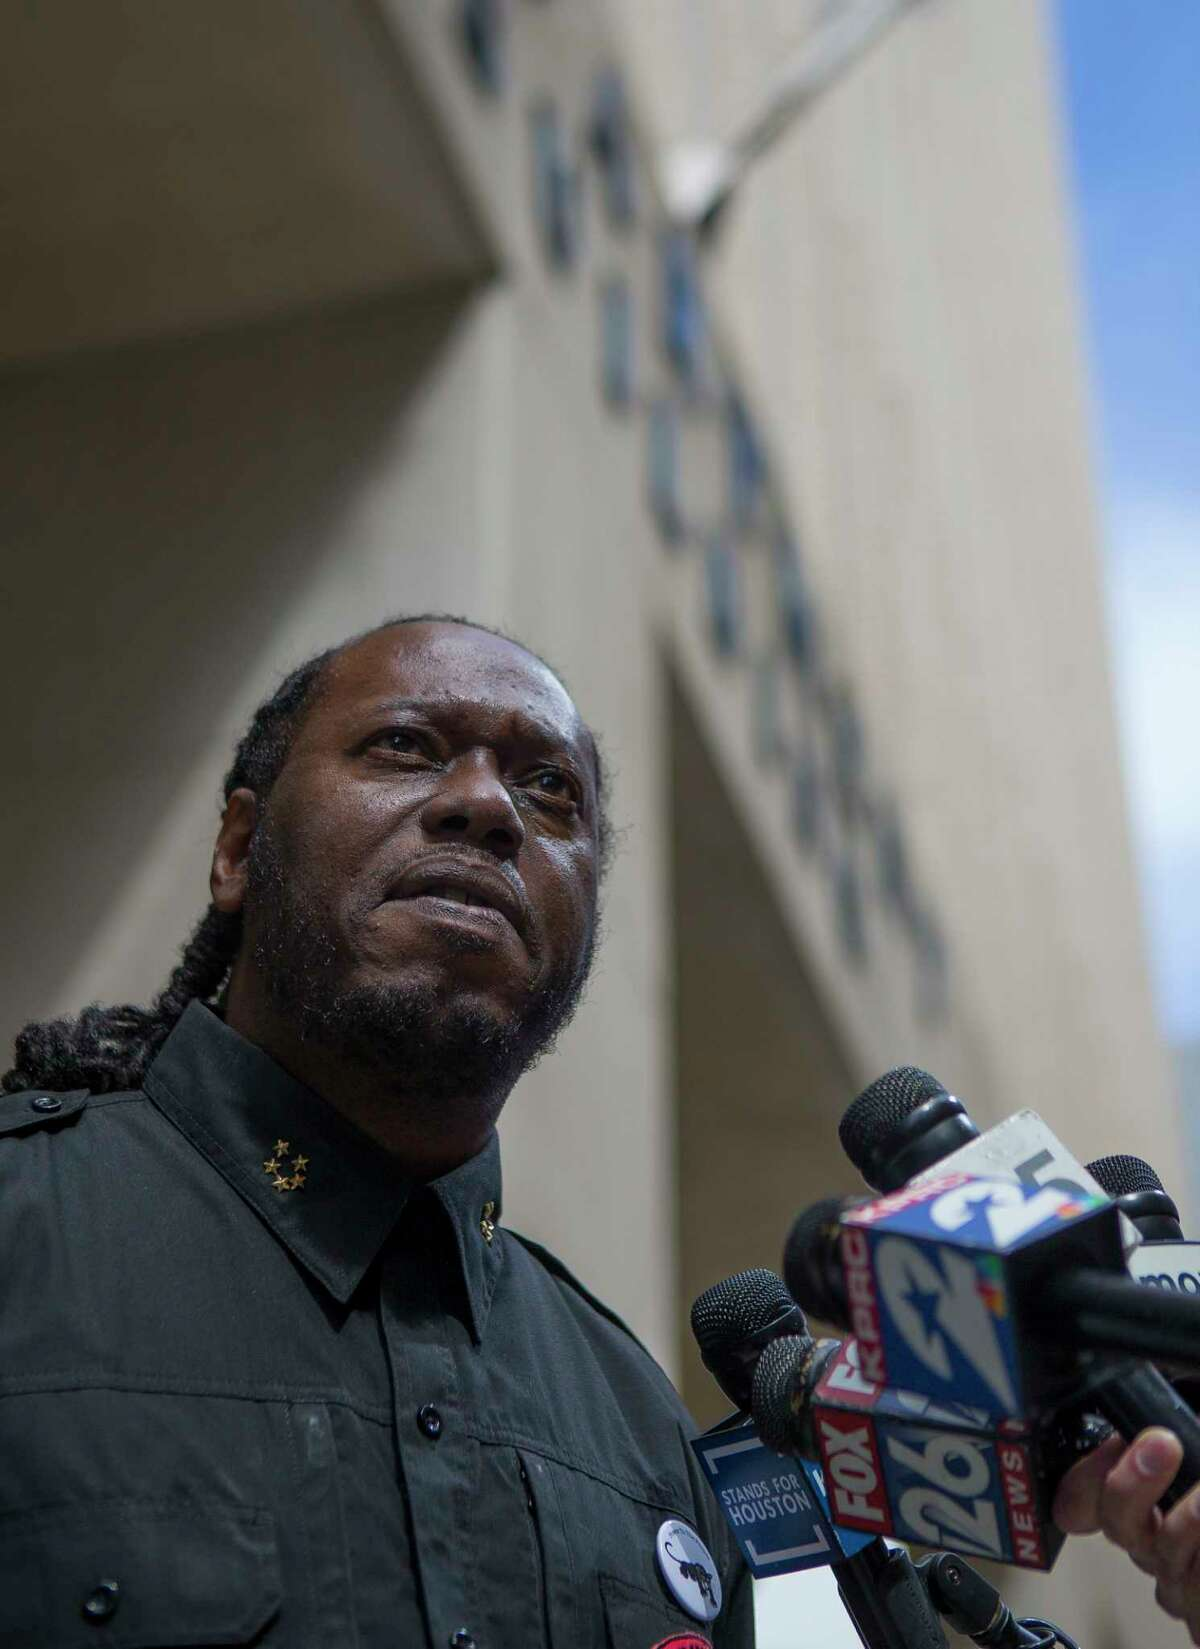 Yahcanon Ben Yah, with The People's New Black Panther Party, addresses the media in front of the Houston Police Department headquarters building in downtown Houston, Monday, Feb. 18, 2019. Activists said they were calling for police accountability and a murder charge the narcotics agent accused of fabricating evidence used to justify a no-knock raid that left two civilians dead.